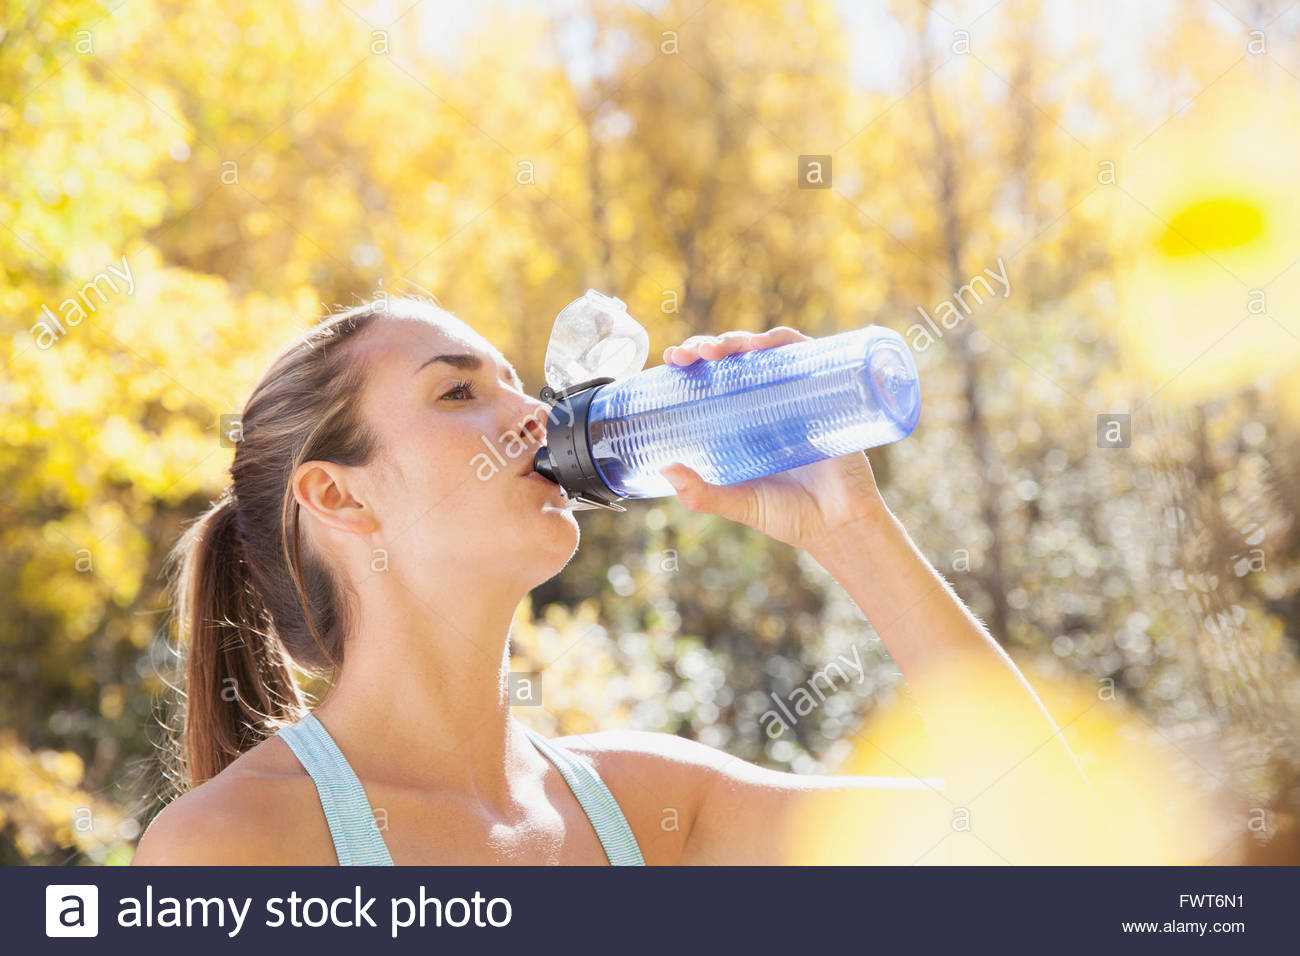 Woman stopping to drink some water outdoors. - Stock Image